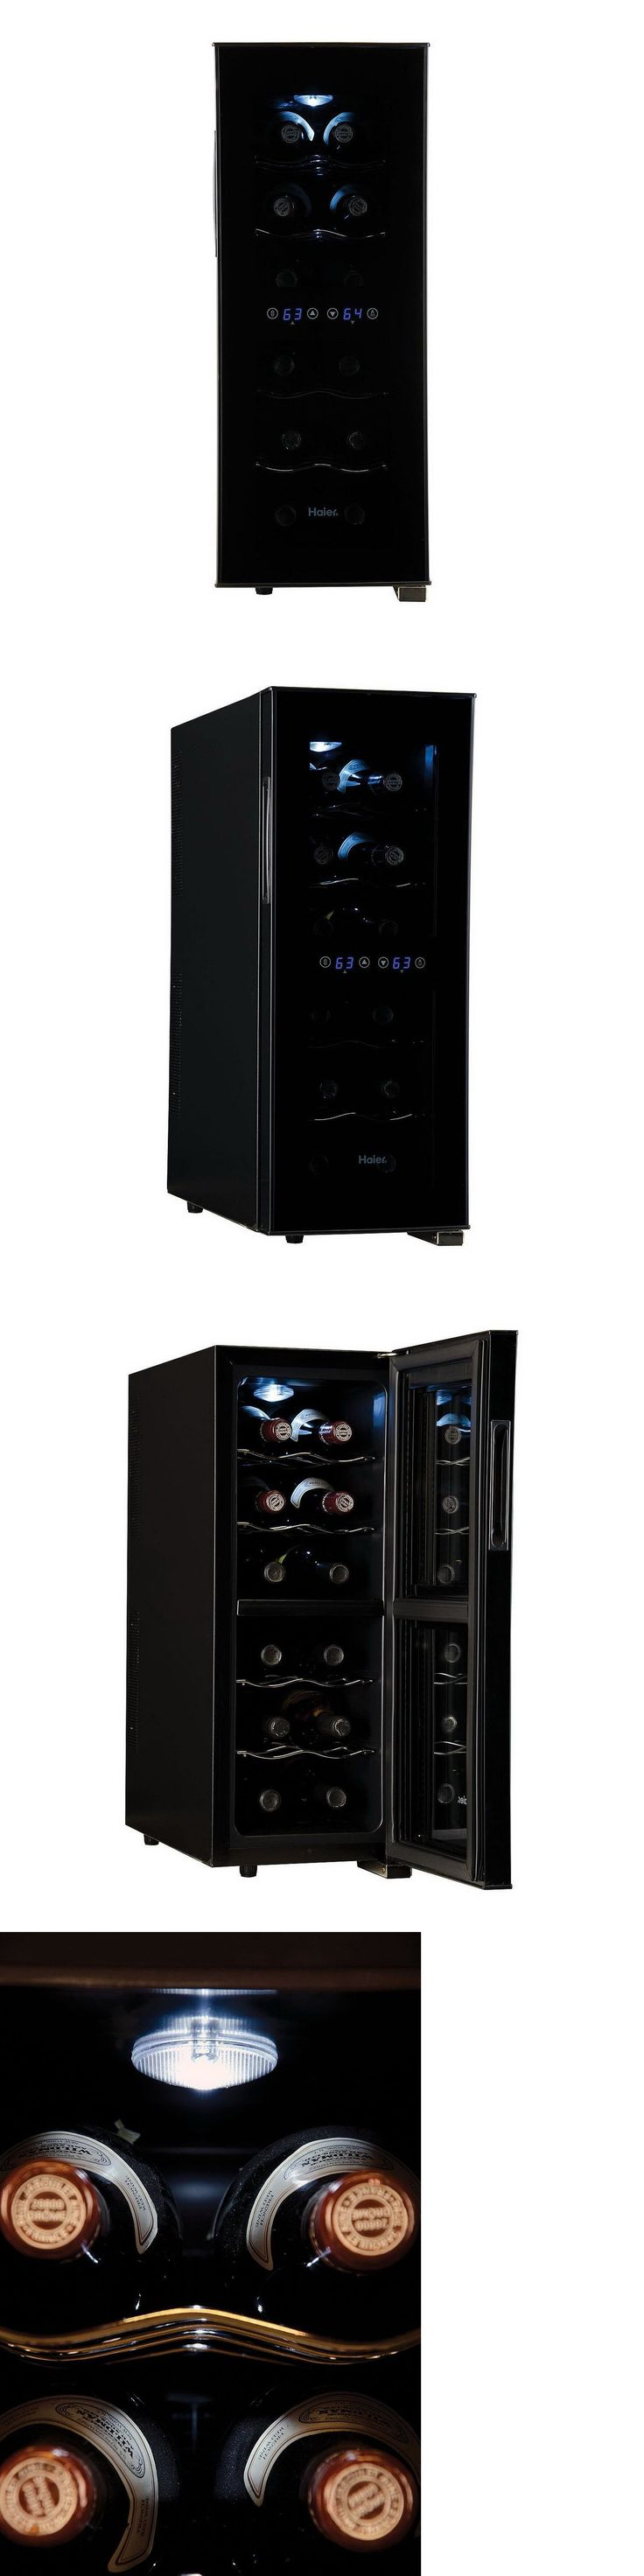 Wine Fridges and Cellars 177750: Haier 12 Bottle Dual Zone Wine Fridge 2 Compartment Cooler Refrigerator 4 Shelf -> BUY IT NOW ONLY: $165.89 on eBay!